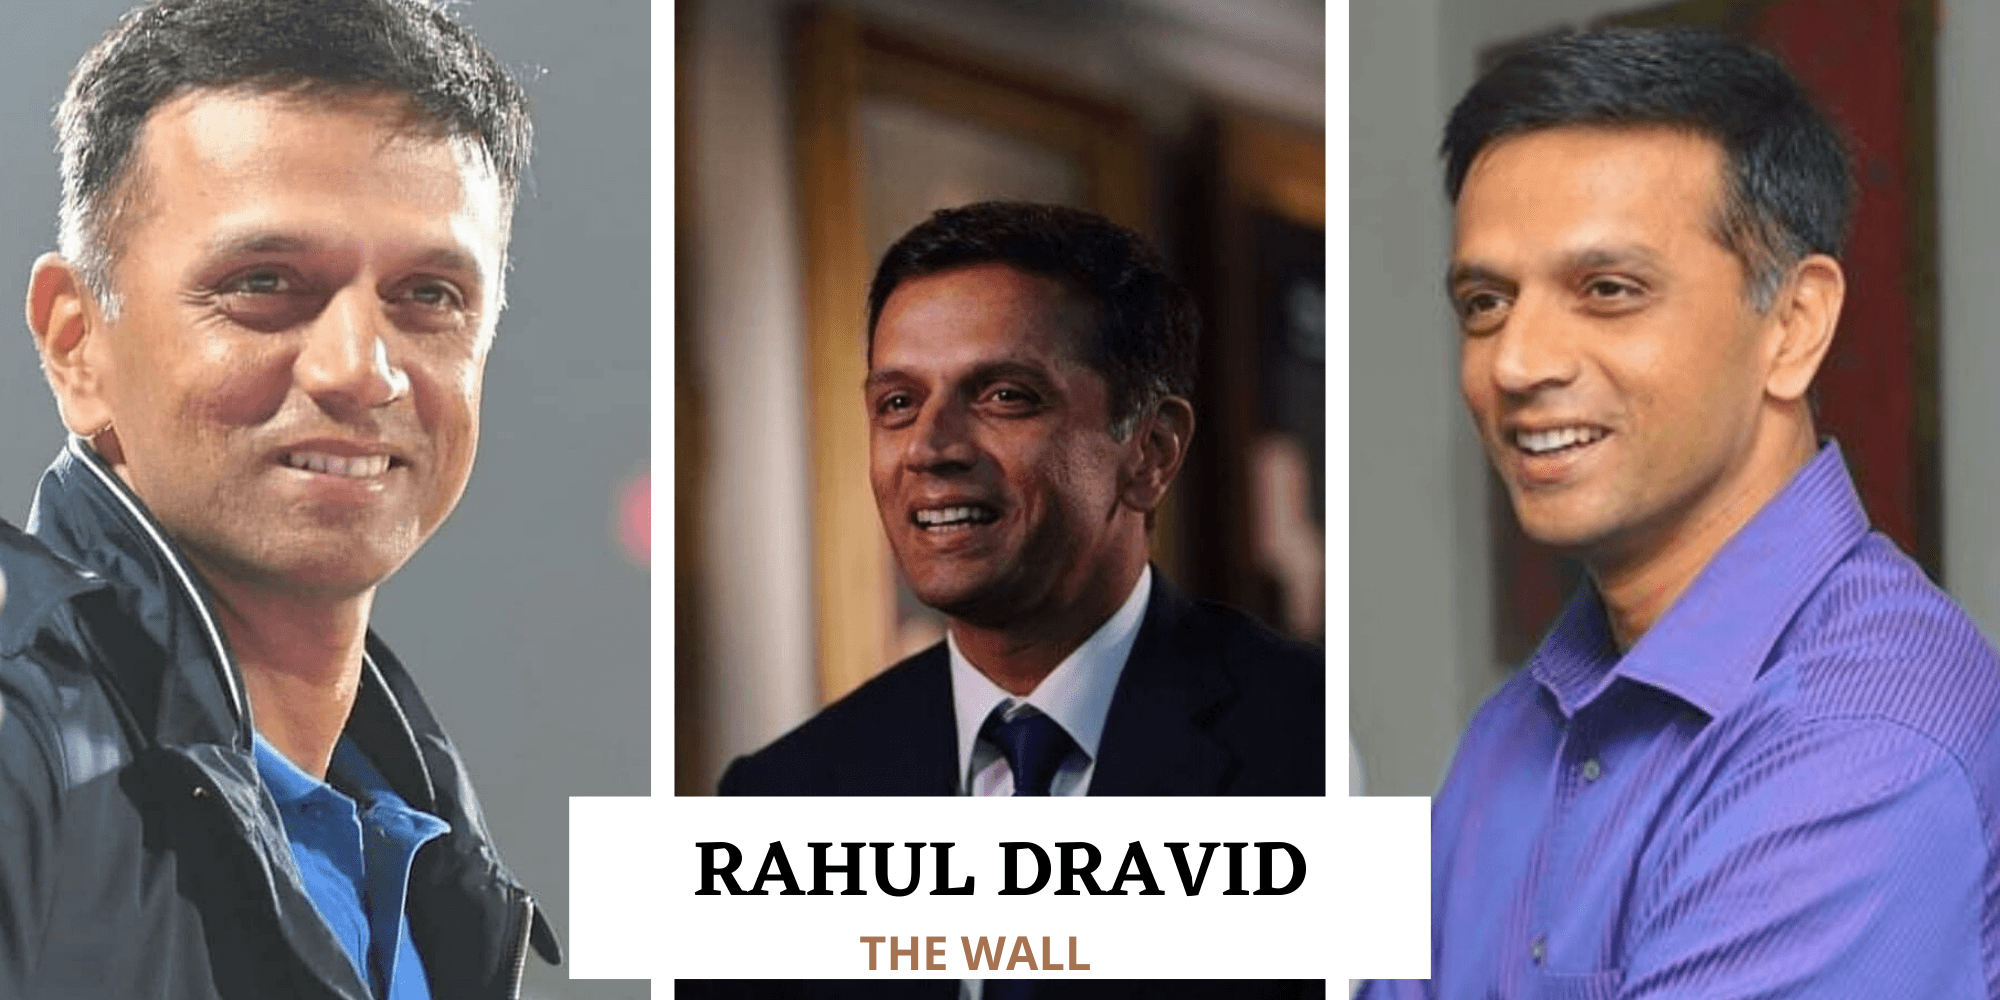 6 lessons to learn from rahul dravid